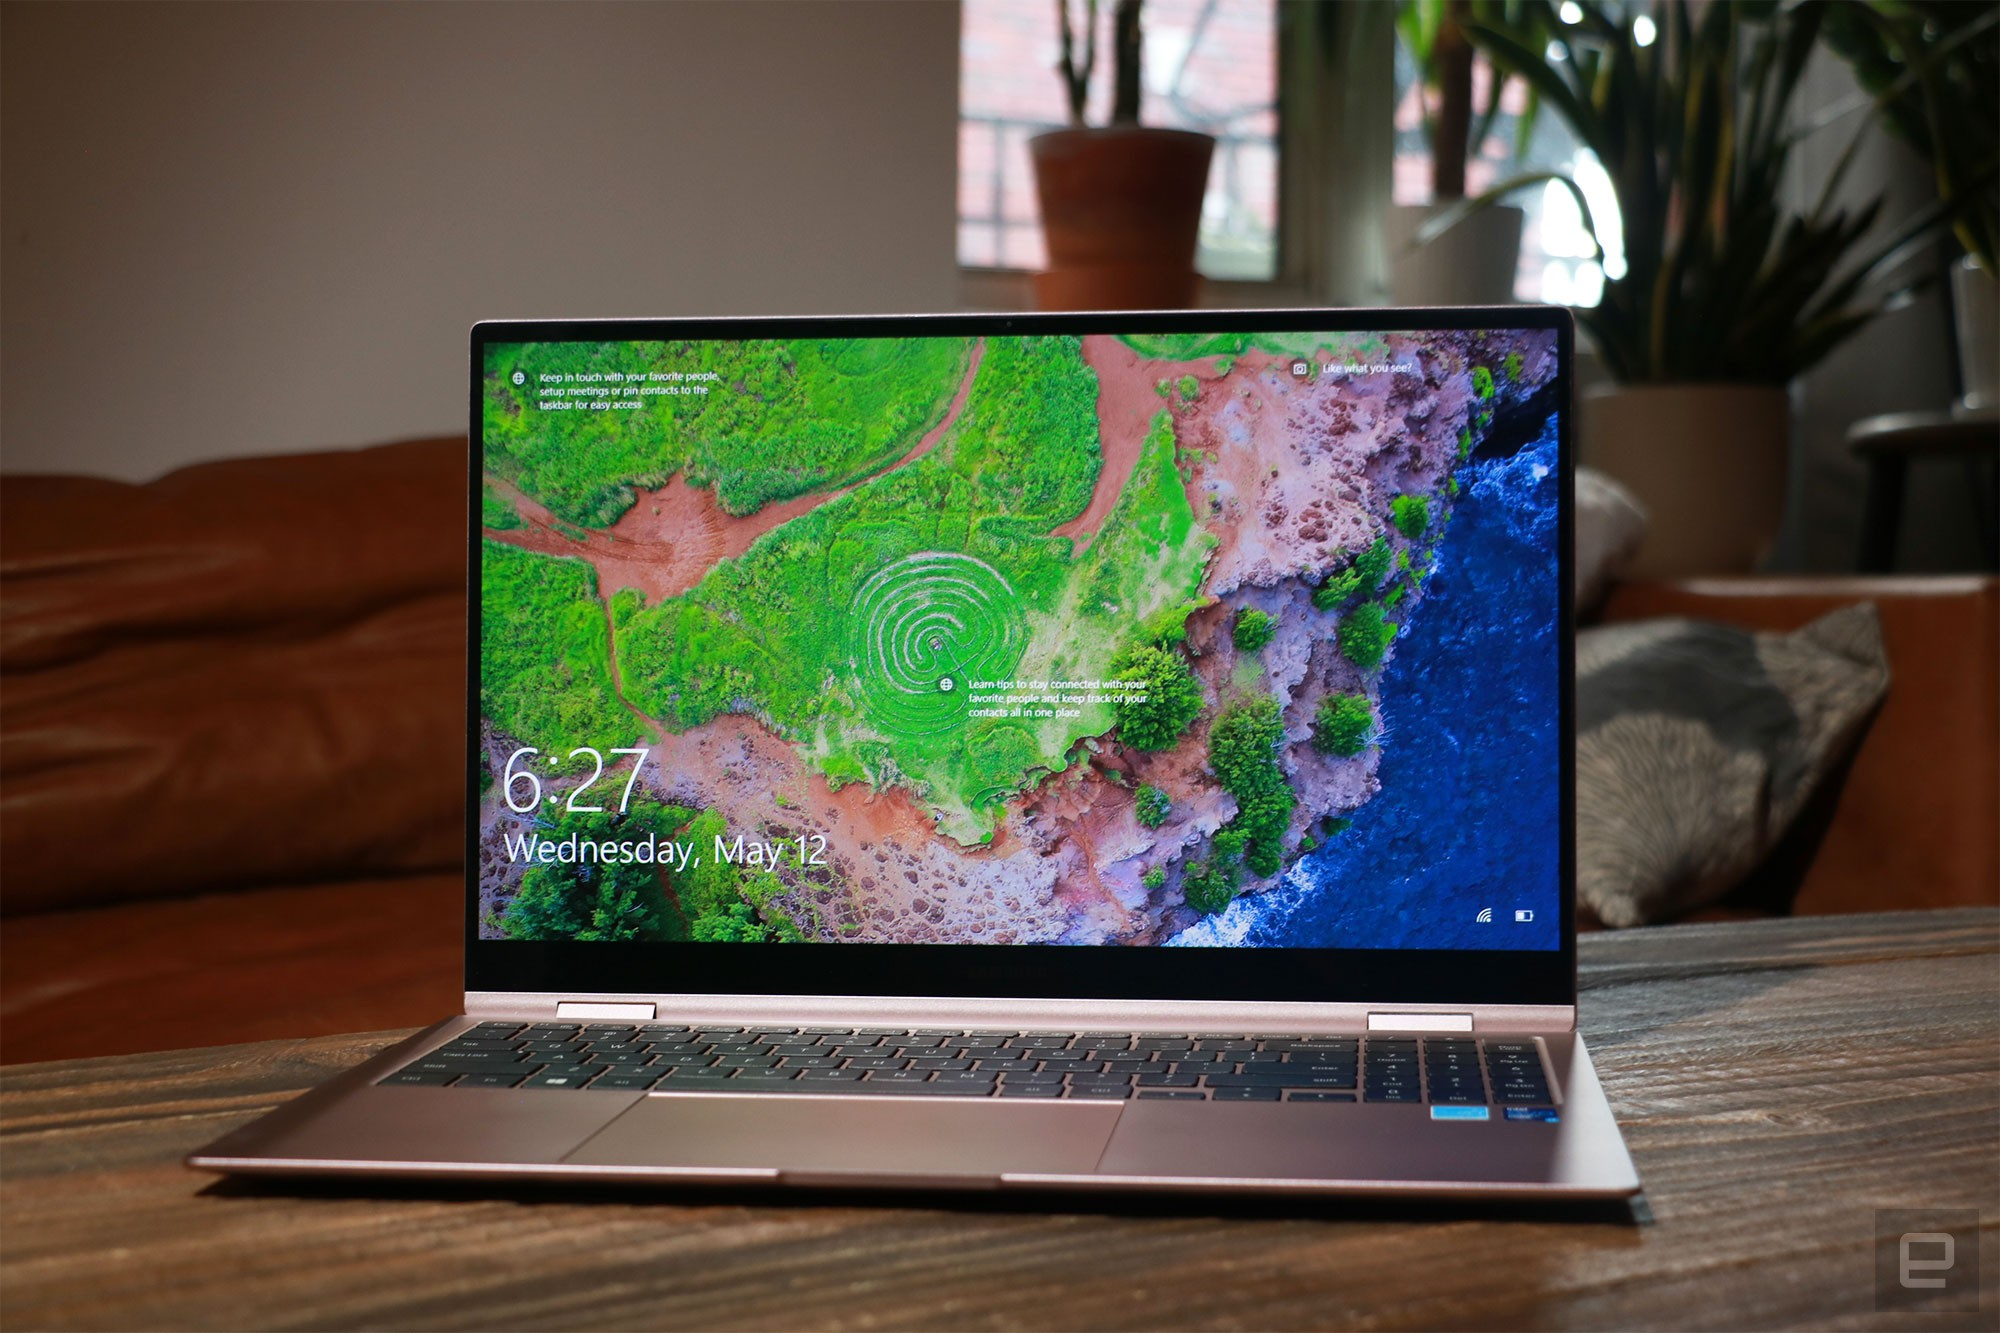 <p>Samsung Galaxy Book Pro 360 review pictures. Front view of the 15-inch Galaxy Book Pro 360 on a table in front of a brown couch.</p>